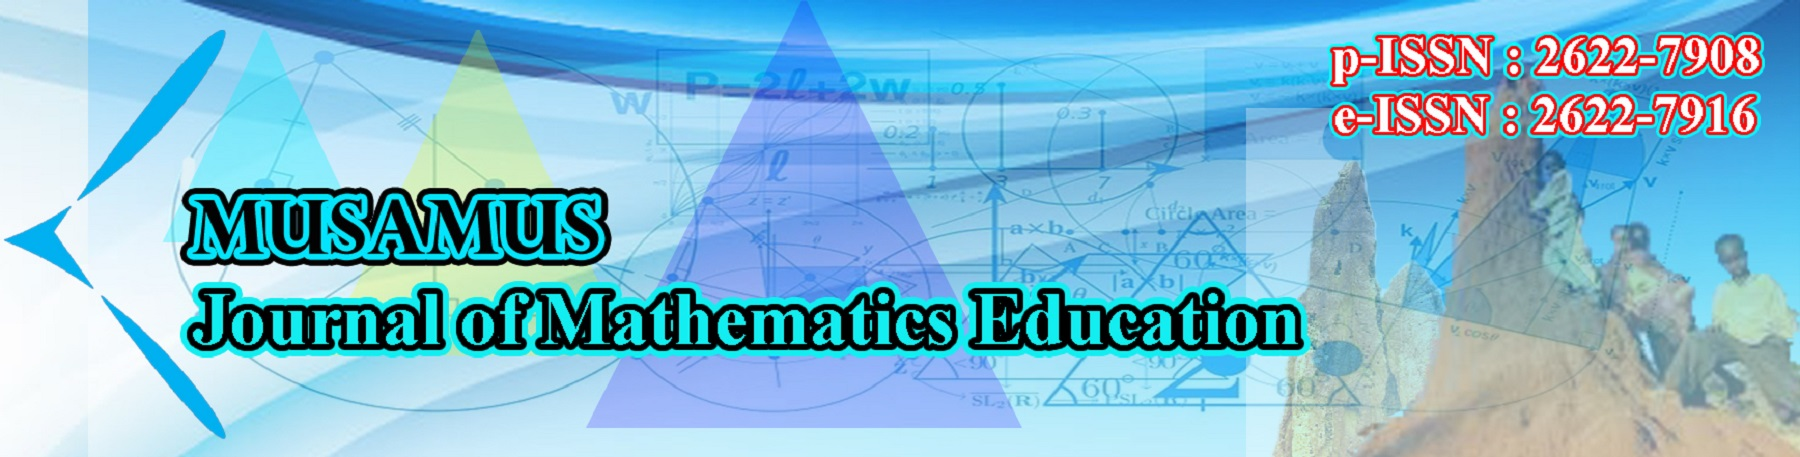 Welcome to the official website of Musamus Journal of Mathematics Education  Musamus Journal of Mathematics Education (MJME) is a peer-reviewed journal published by Faculty of Teacher Training and Education, Musamus University, Merauke Papua Indonesia. MJME is published twice a year (October and April) available in electronic and printed version. Hence, we are welcome submission paper in English and Indonesian language.